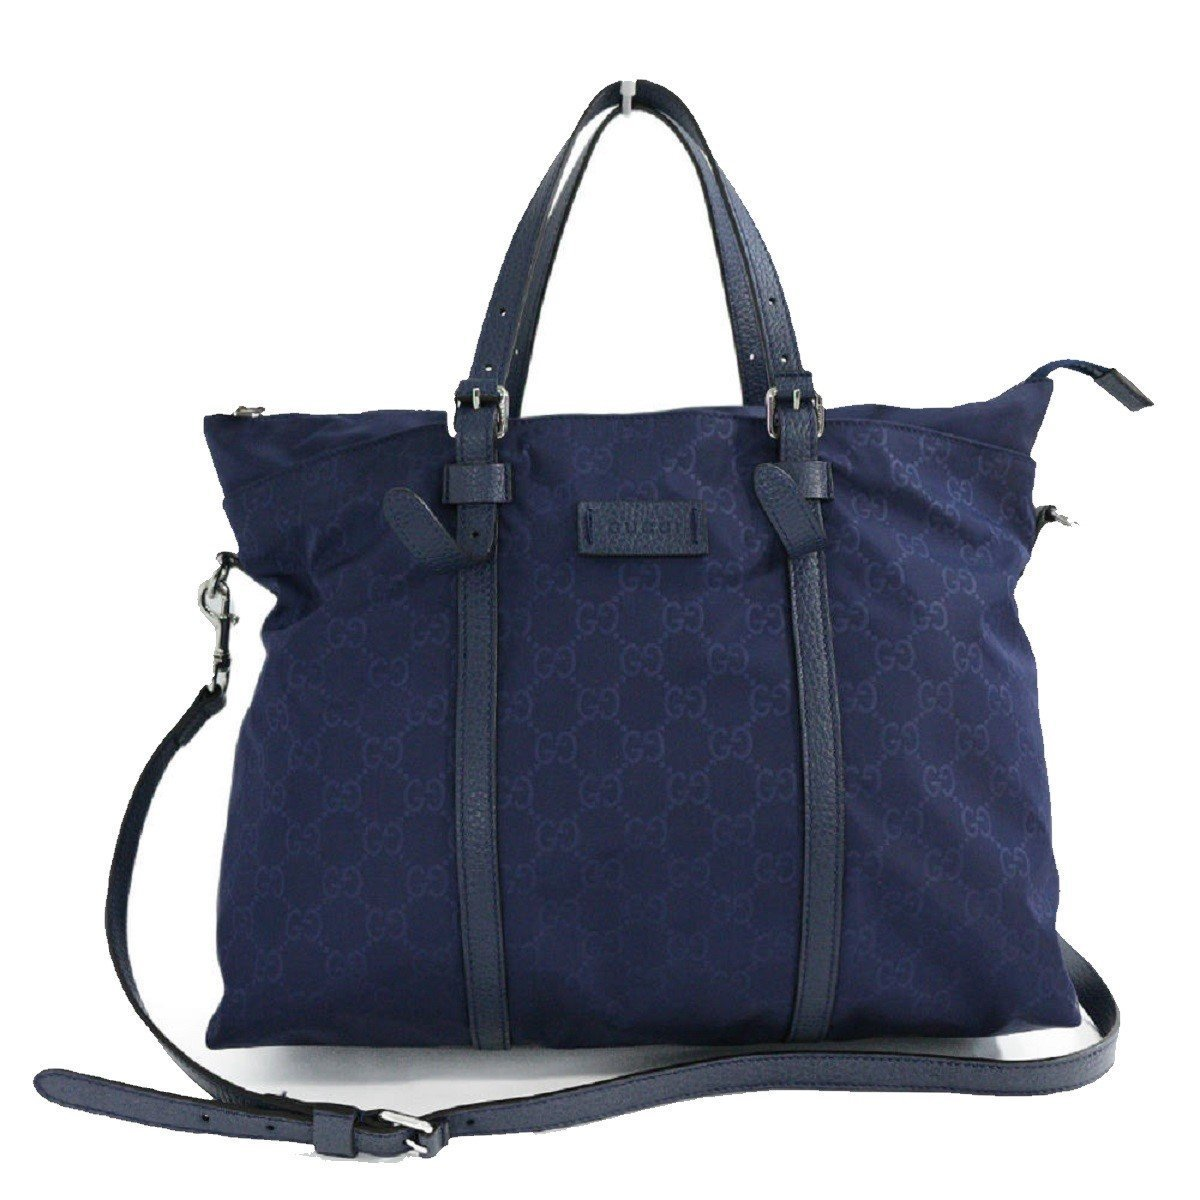 Gucci Zip Top Guccissima Navy Blue Detachable Strap GG Nylon Tote Handbag 510332